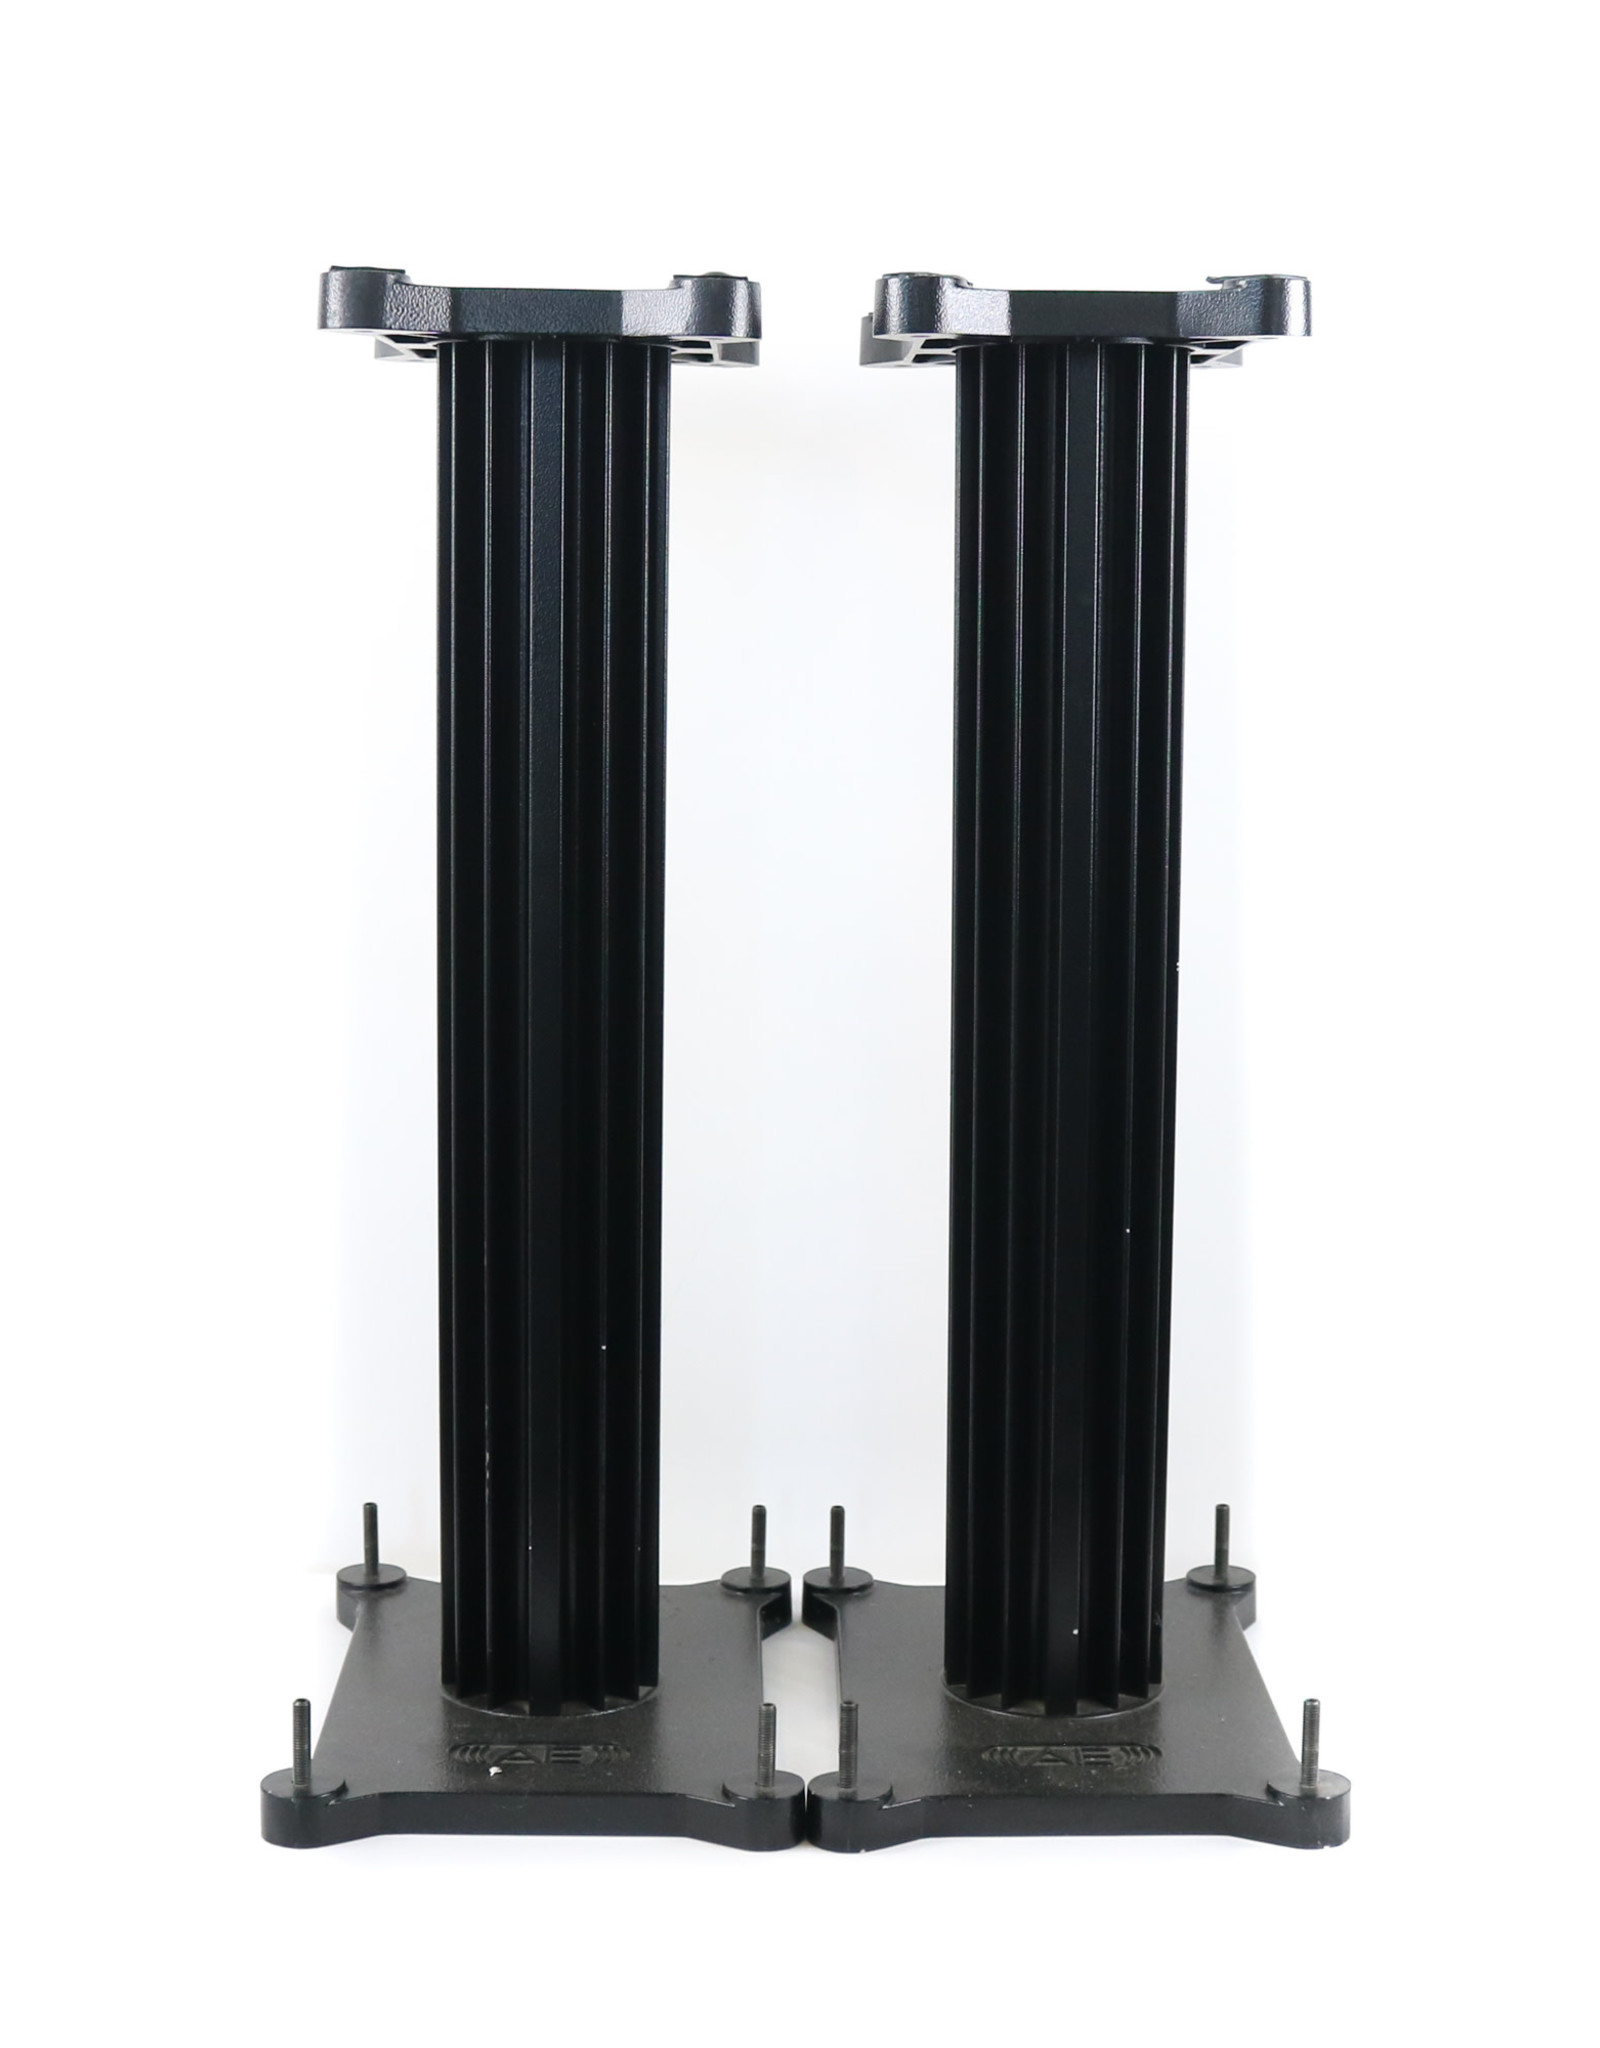 Acoustic Energy Acoustic Energy AE-2 Bookshelf Speakers With Stands USED